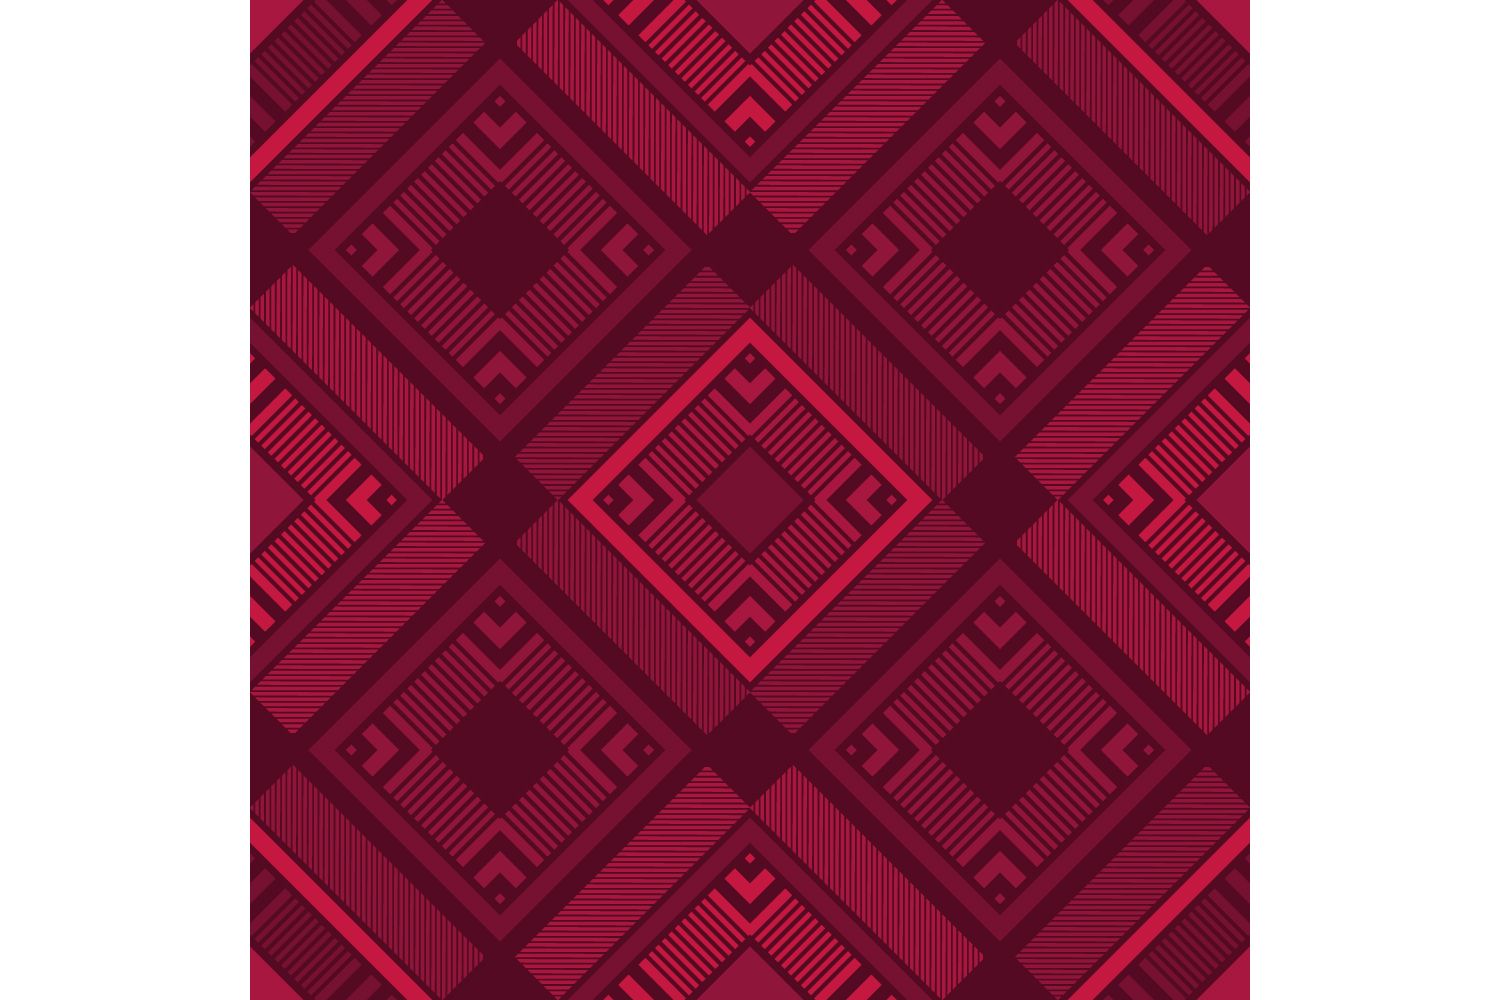 Tartan texture. Set of 10 seamless patterns. example image 5